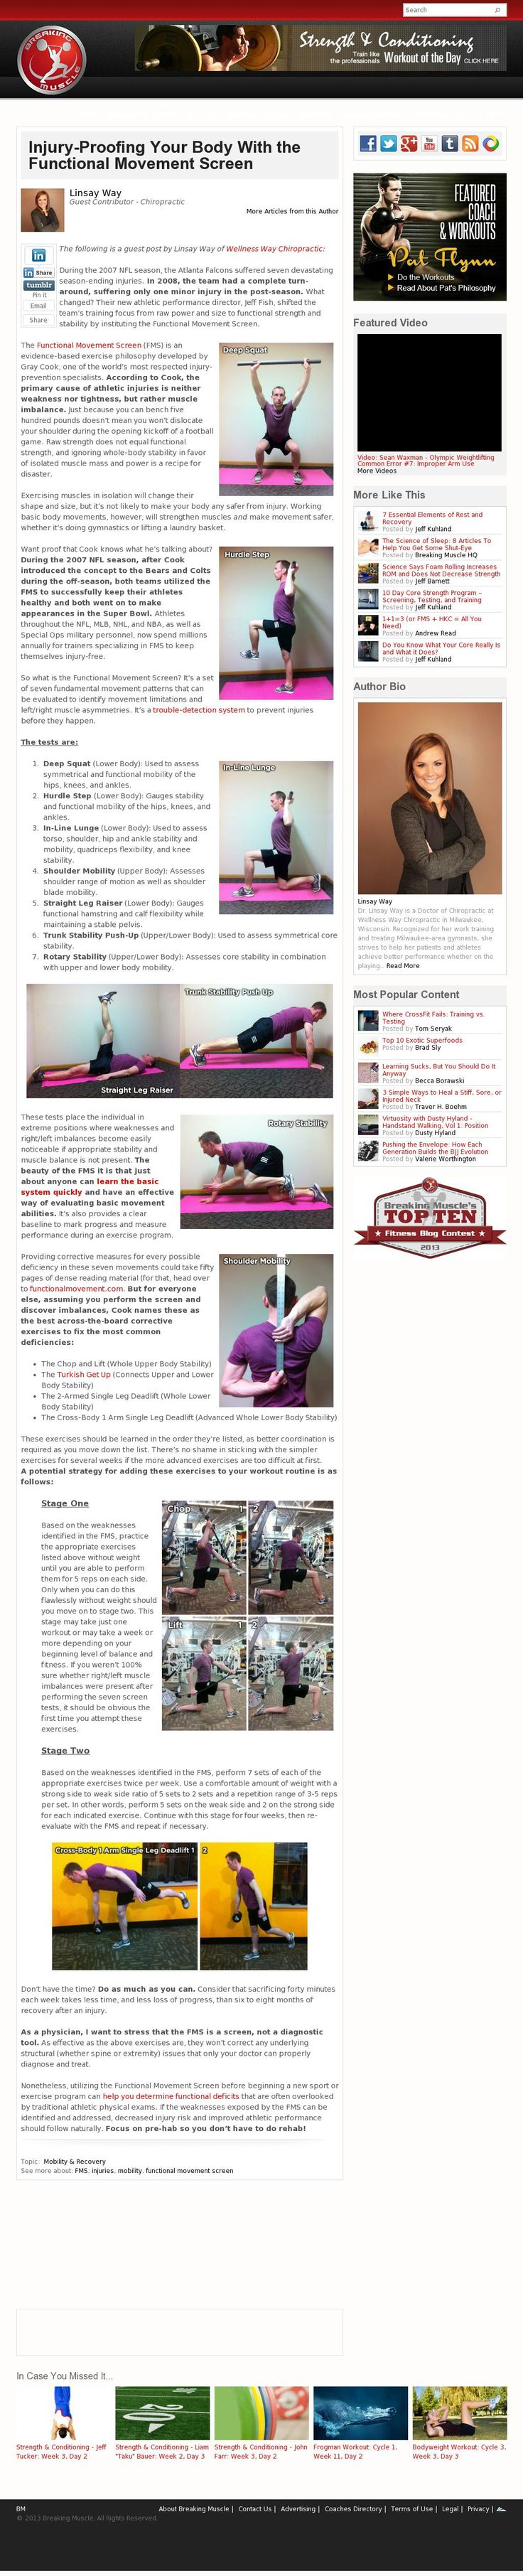 The website 'http://breakingmuscle.com/mobility-recovery/injury-proofing-your-body-functional-movement-screen' courtesy of @Pinstamatic (http://pinstamatic.com)